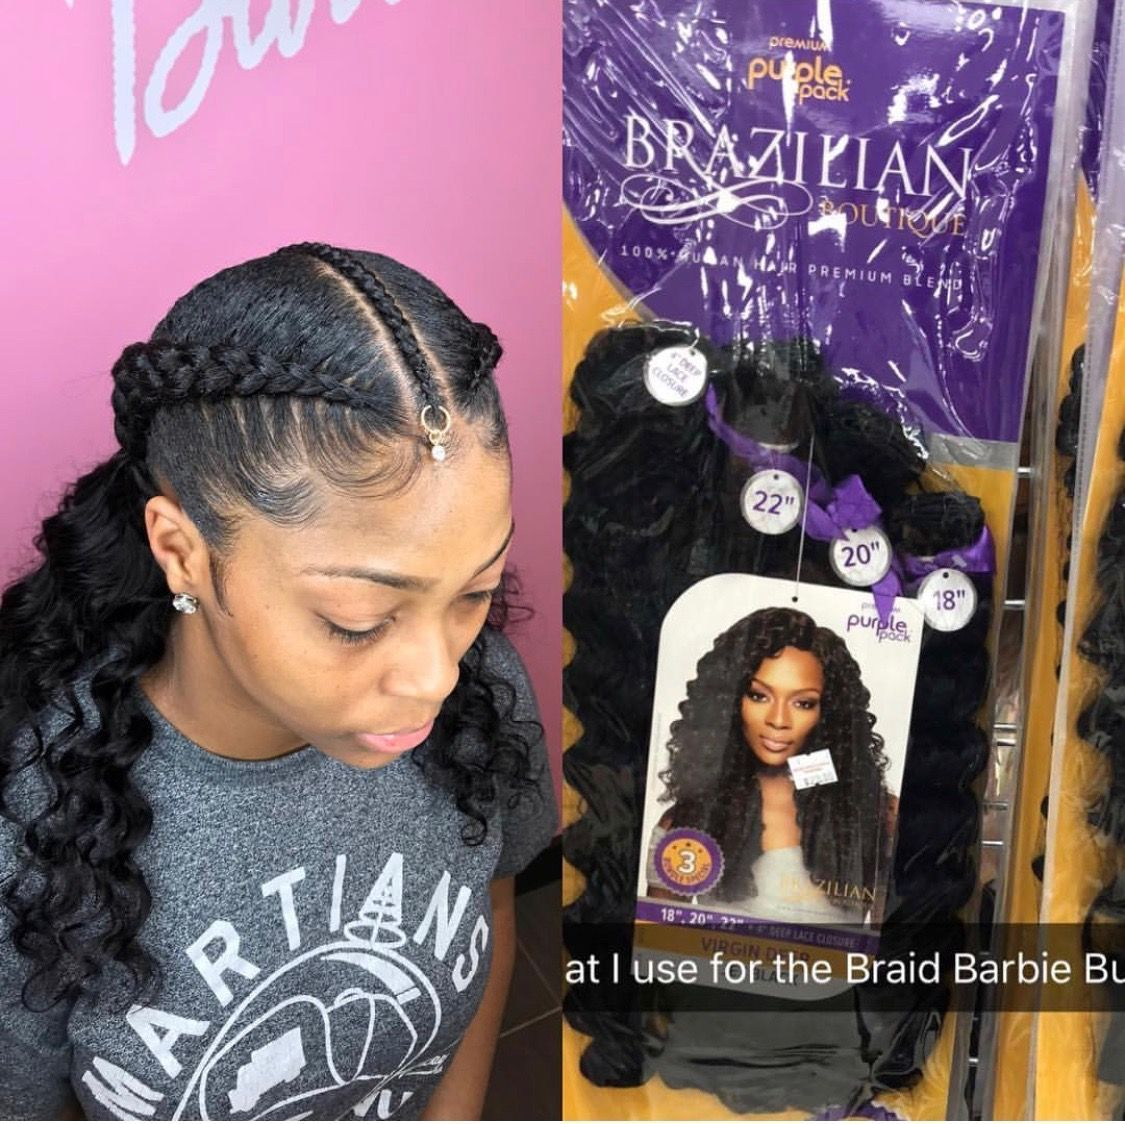 I Talia Follow Me To See Fashion Tips Tricks And Much More Insta Thtshanteee Sc Lad Hair Styles Womens Hairstyles Braided Hairstyles For Black Women